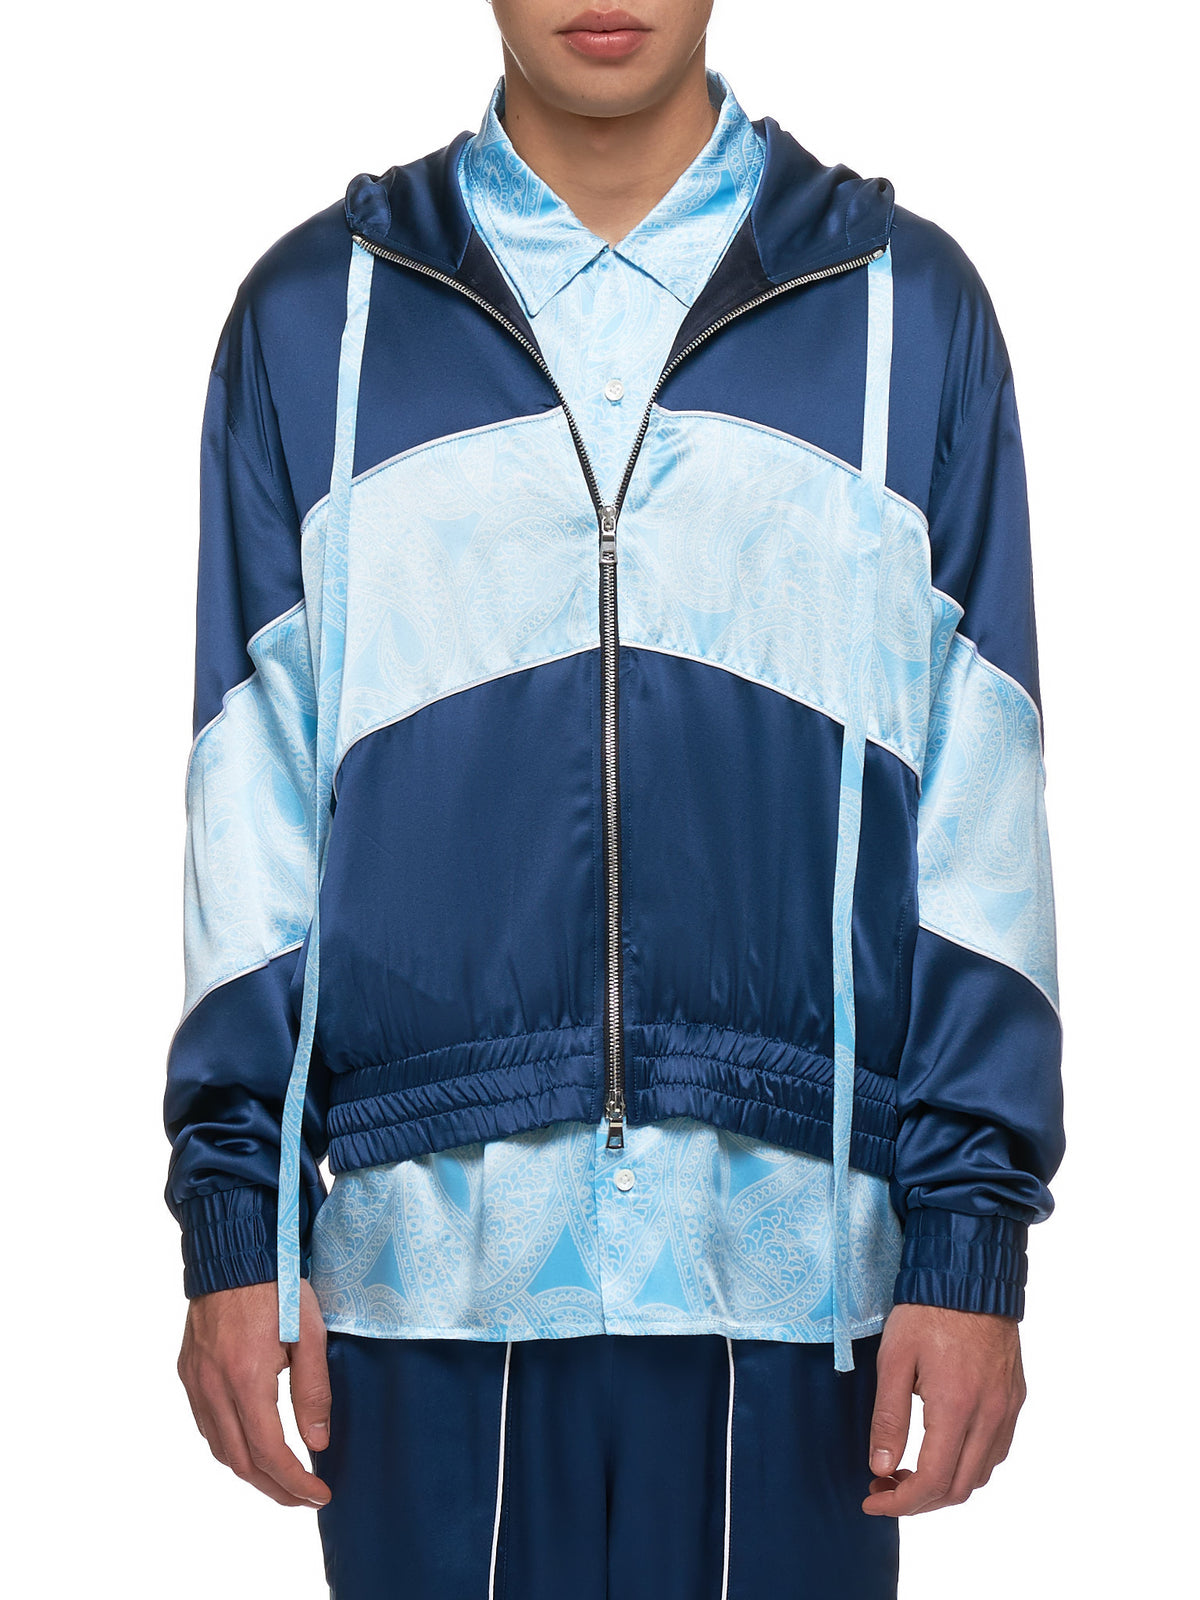 Courtside Jacket (COURTSIDE-JKT-BLUE-PAISLEY)